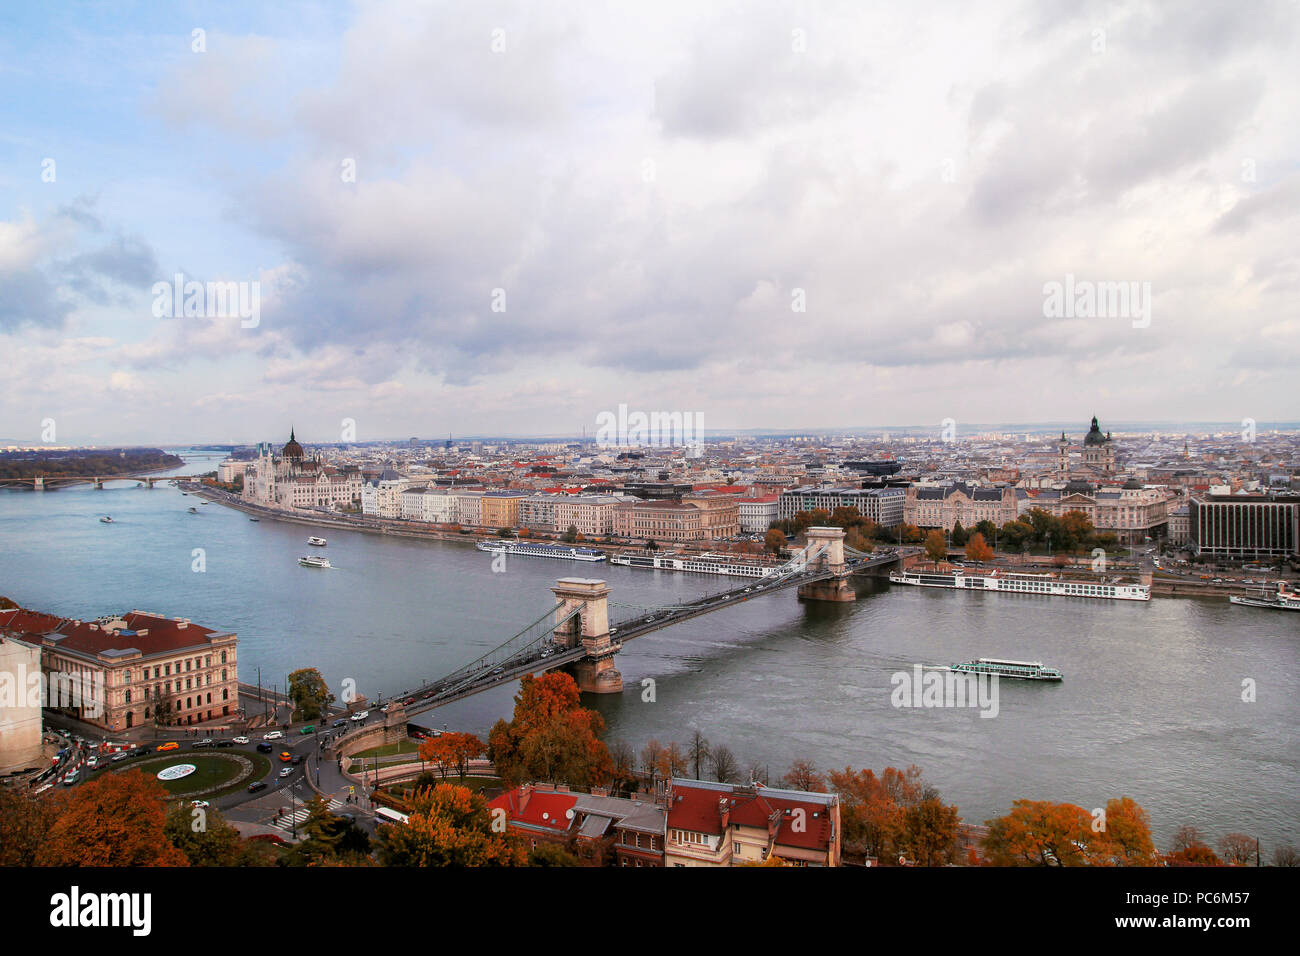 Budapest, Hungary - October 29, 2016: Landmark of Budapest, Chechen Chain Bridge that spans the River Danube between Bud and Pest. Buildings at the ba Stock Photo